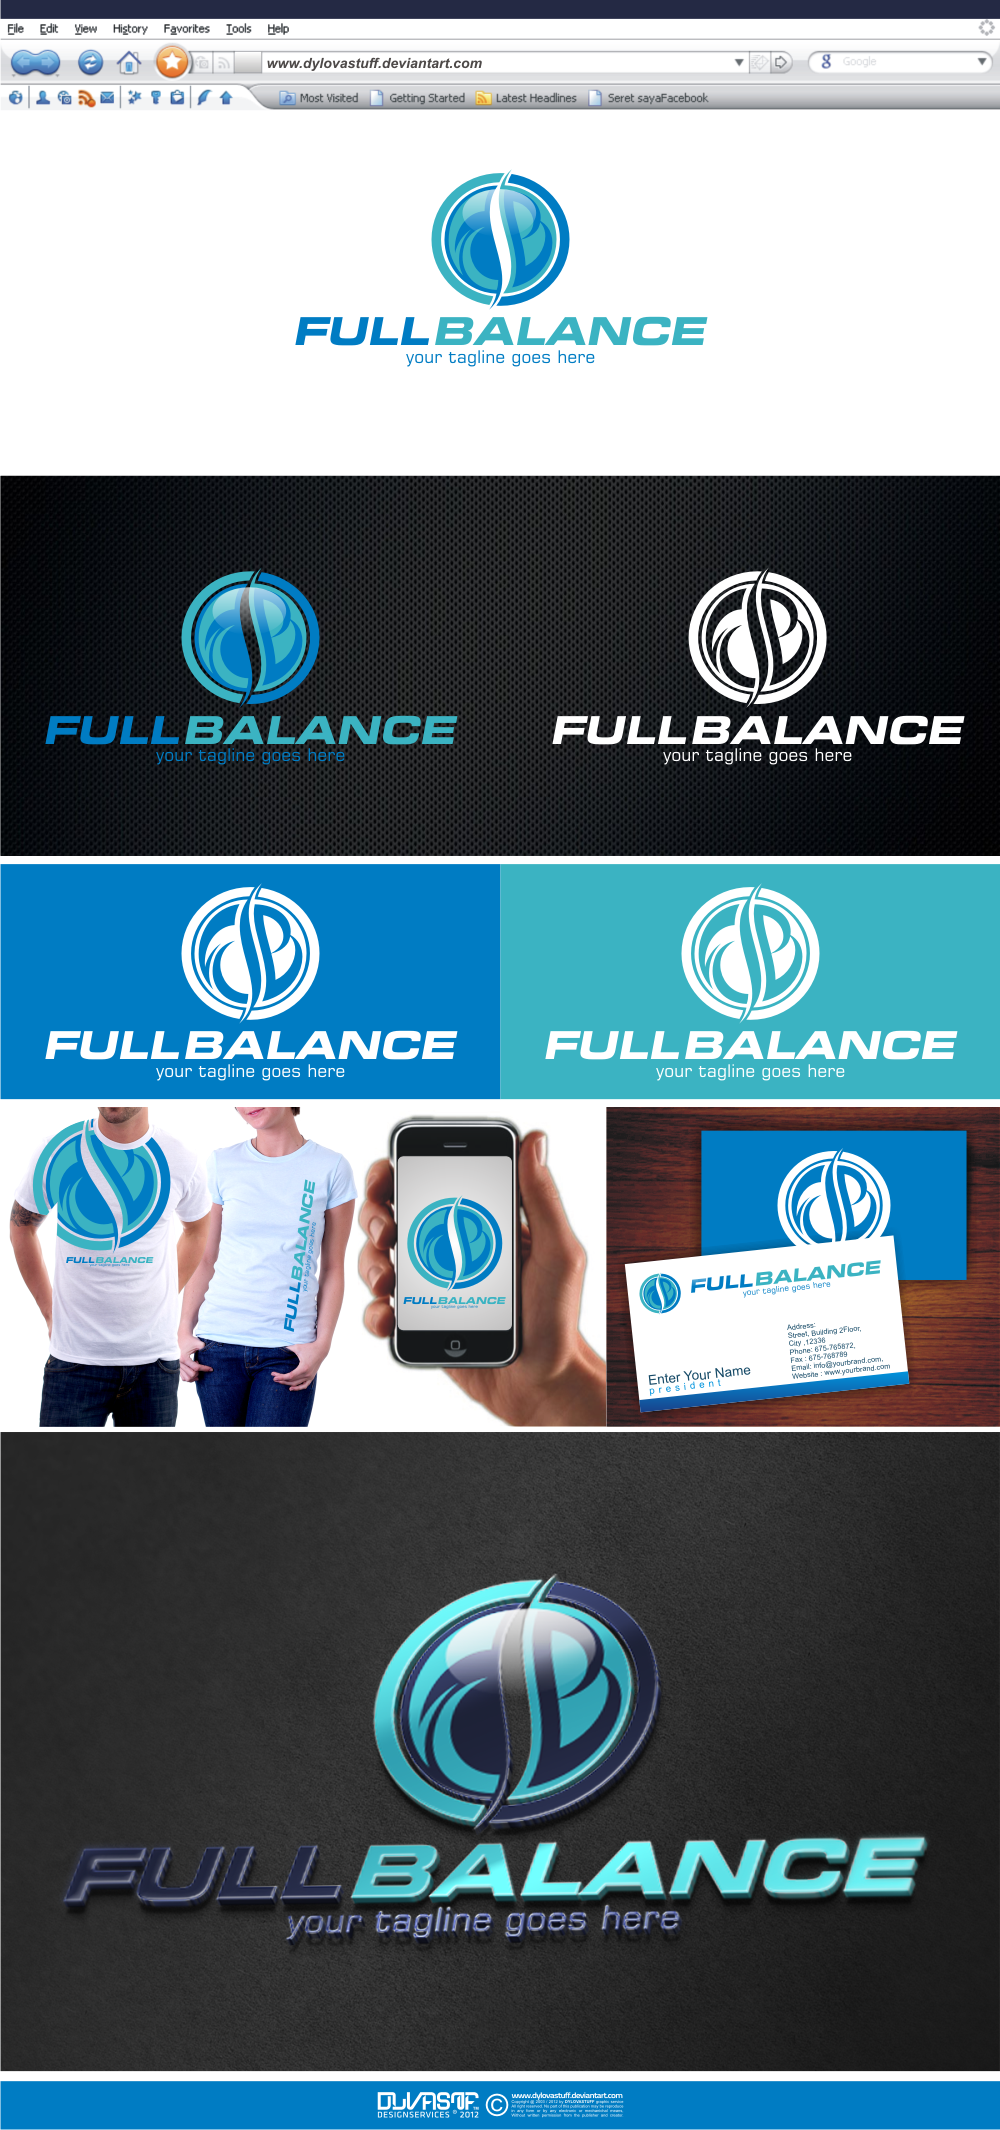 logo for Full Balance